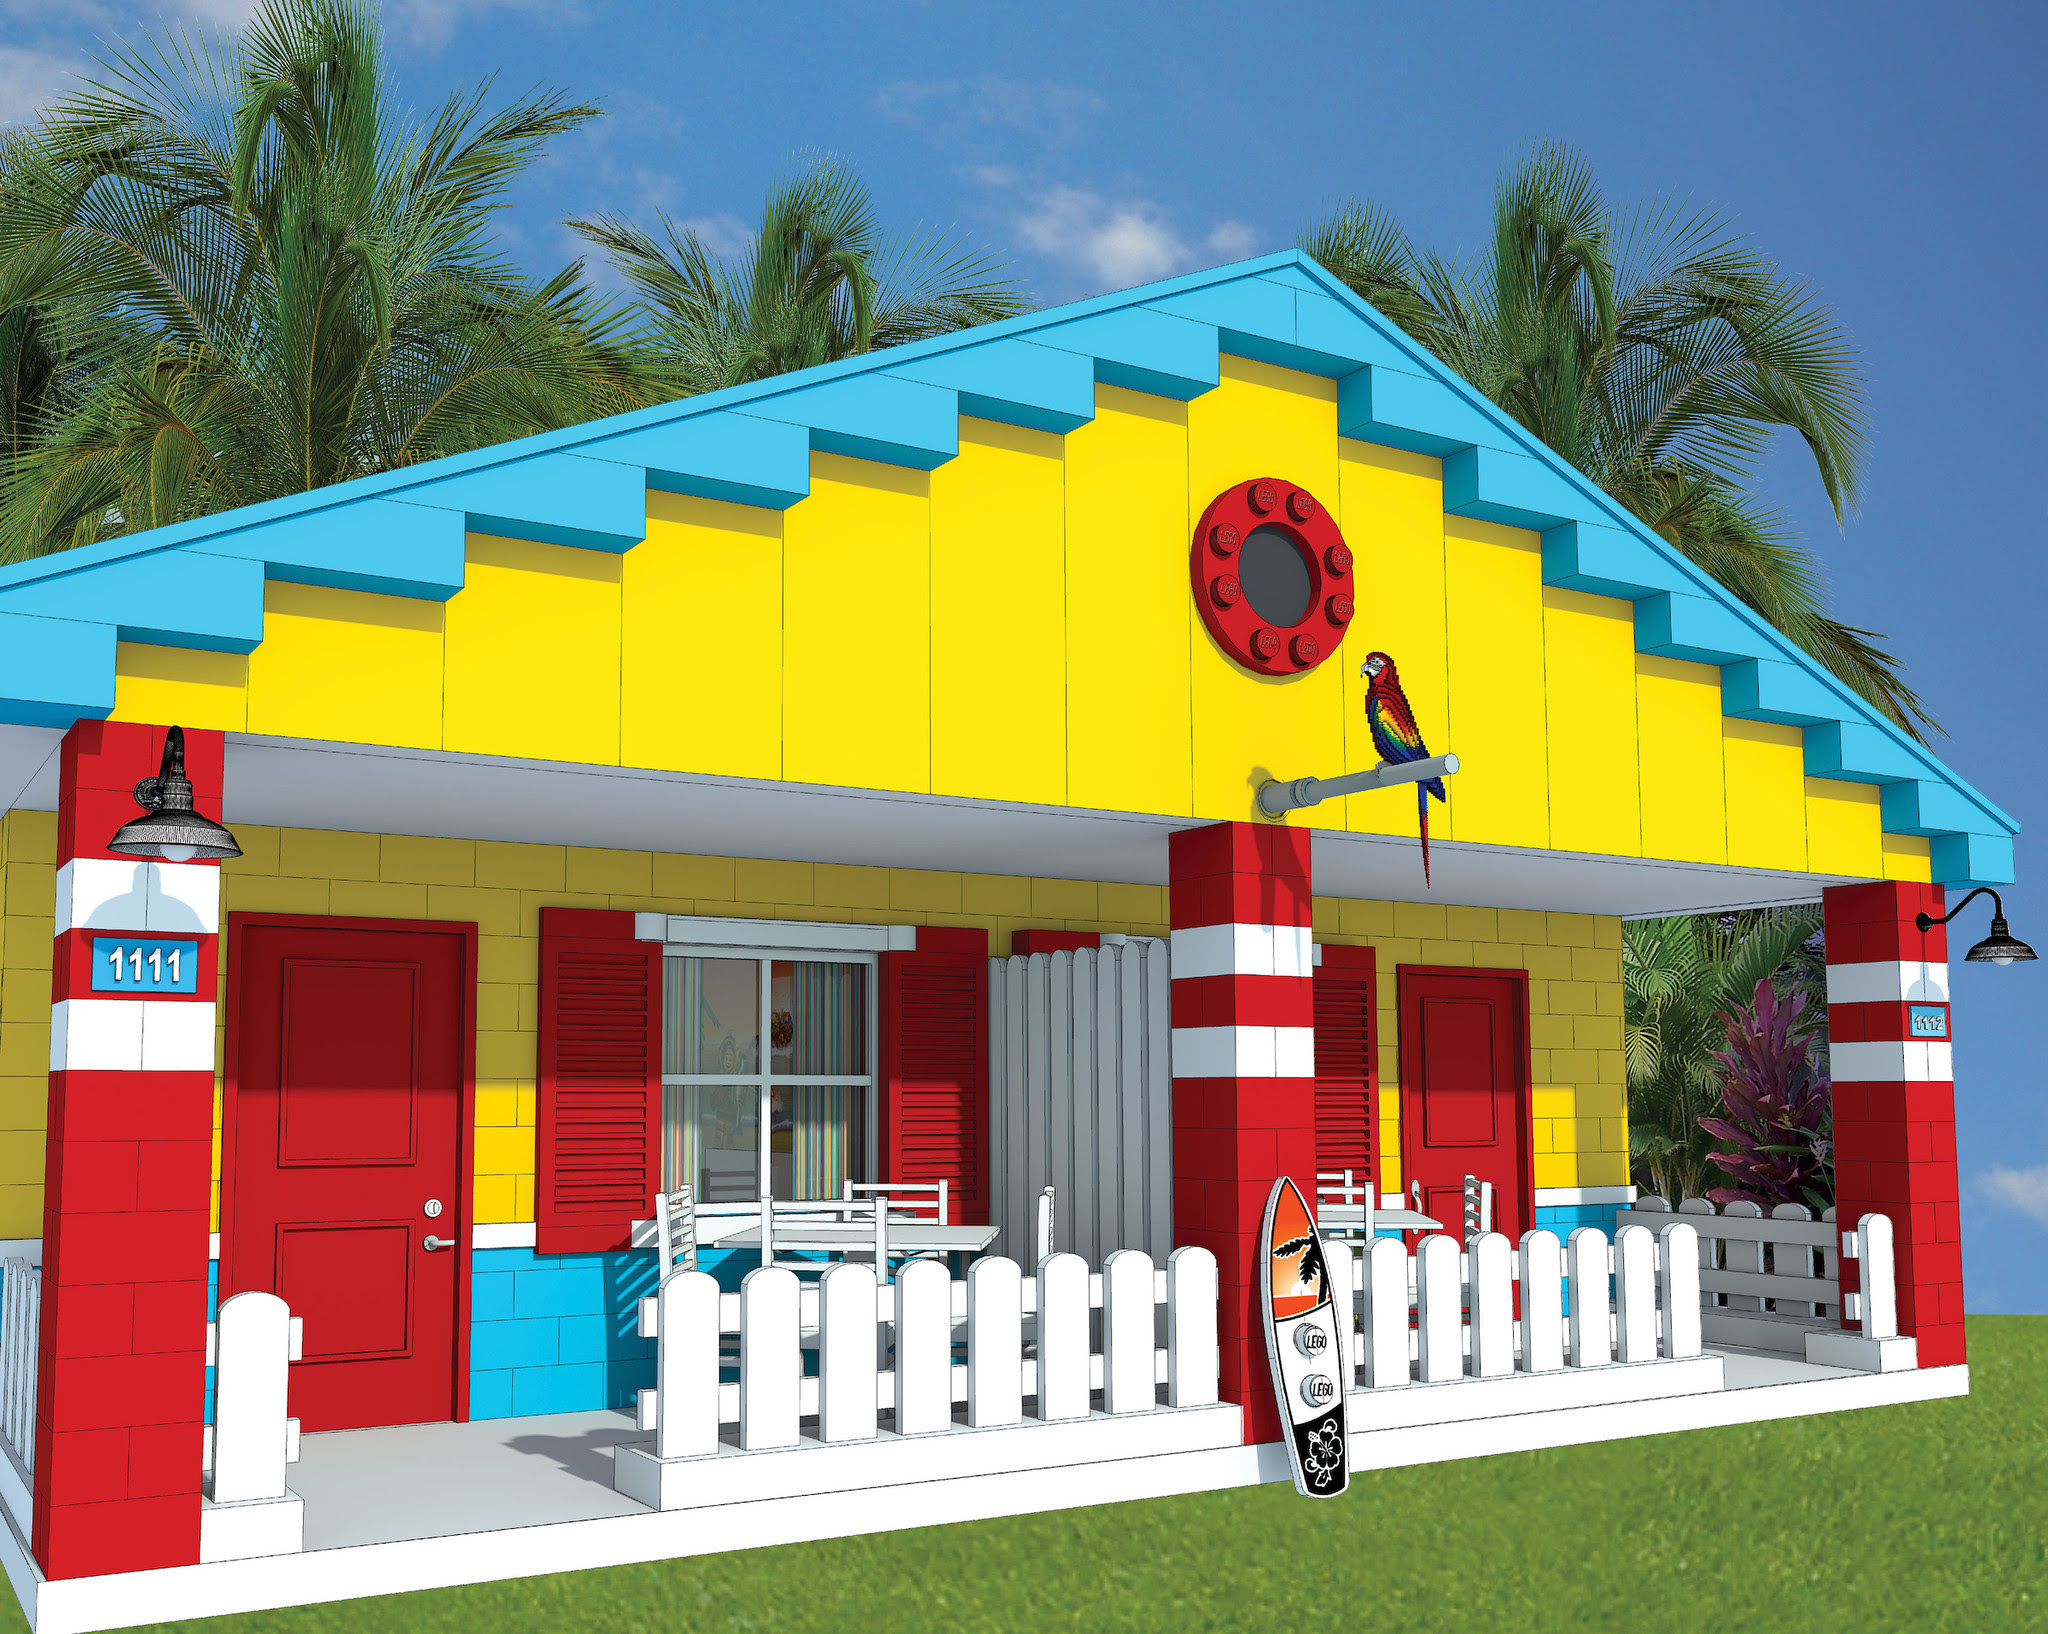 Legoland now taking reservations for new Beach Resort